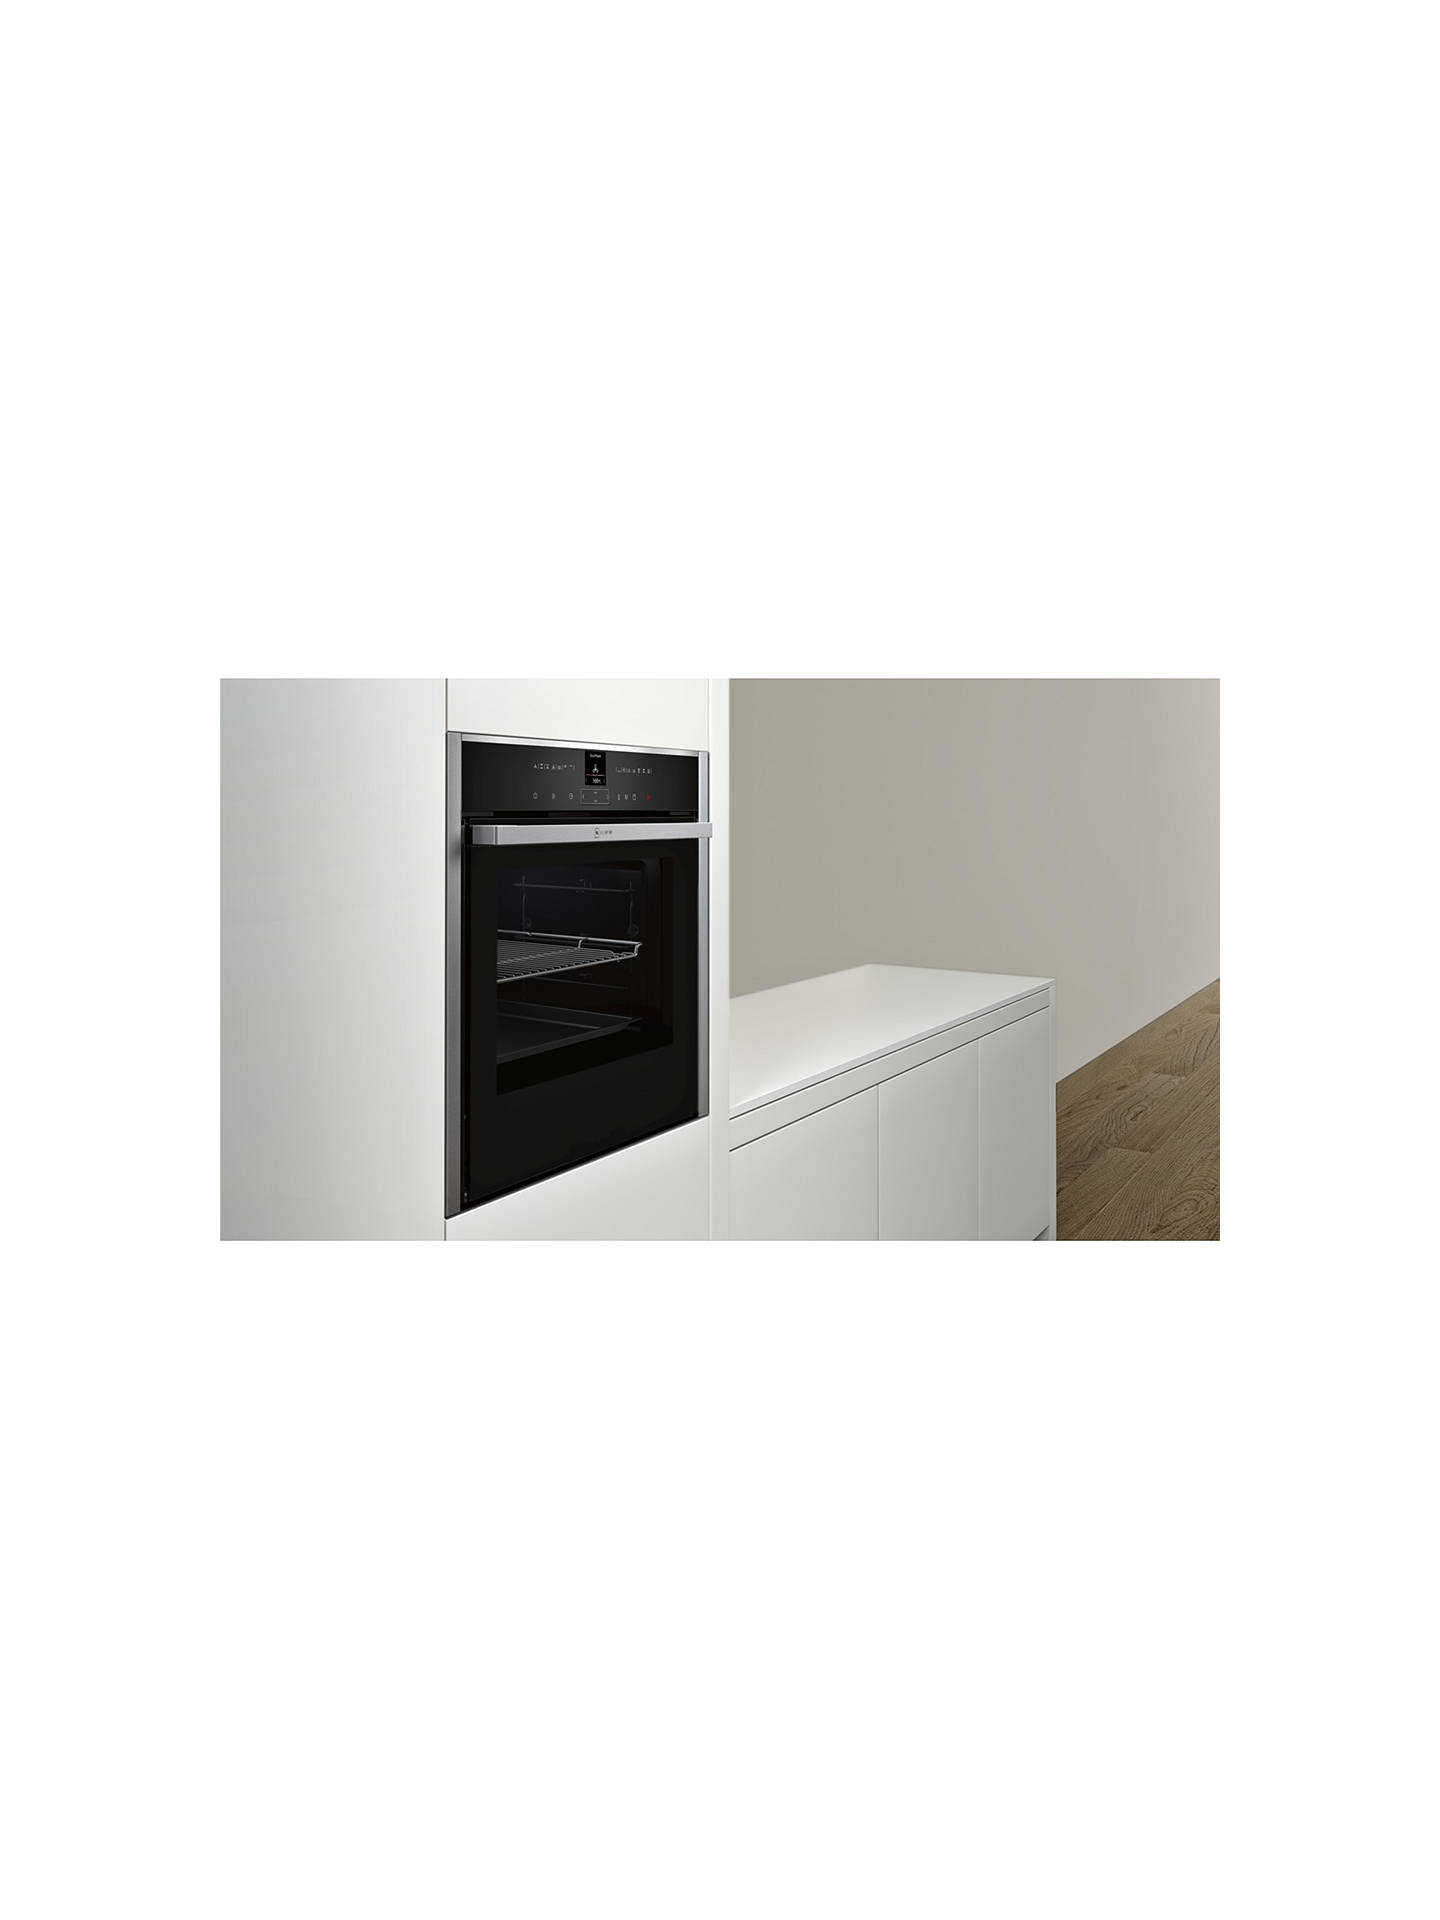 BuyNeff B57VR22N0B Slide and Hide Single Electric Oven, Stainless Steel Online at johnlewis.com